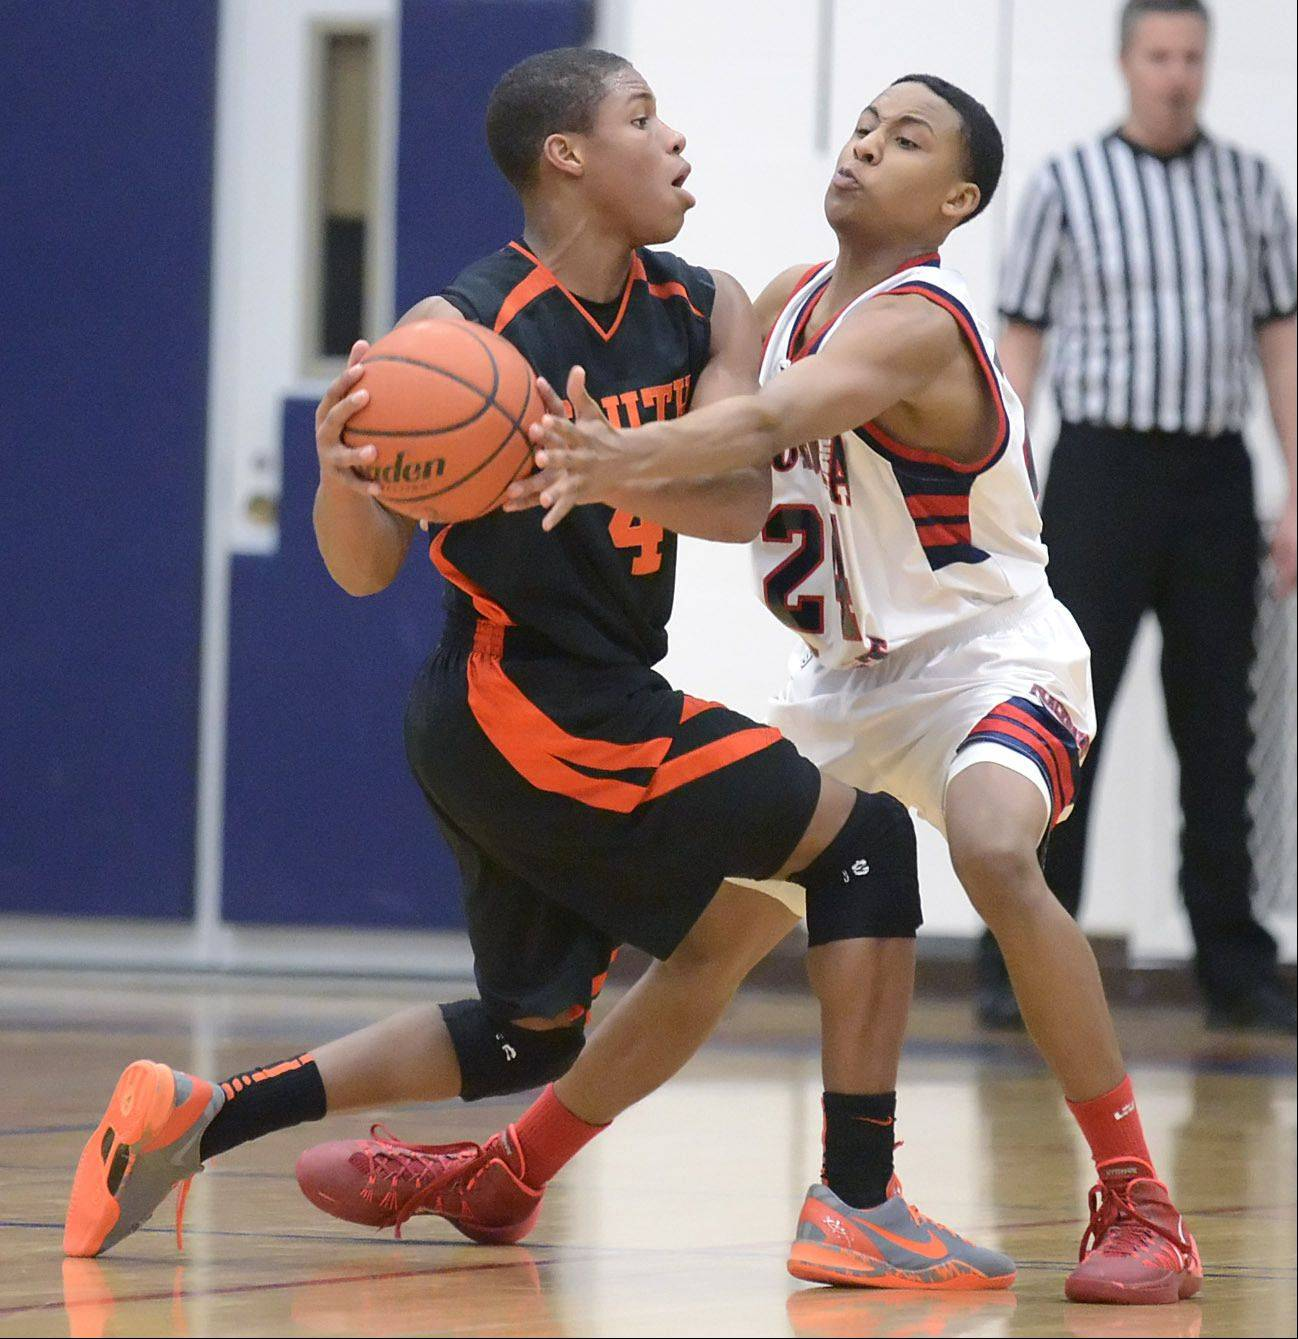 Wheaton Warrenville South's Keishawn Watson tries to pass around a block by West Aurora's Myles Wisley in the second quarter on Tuesday, February 4.